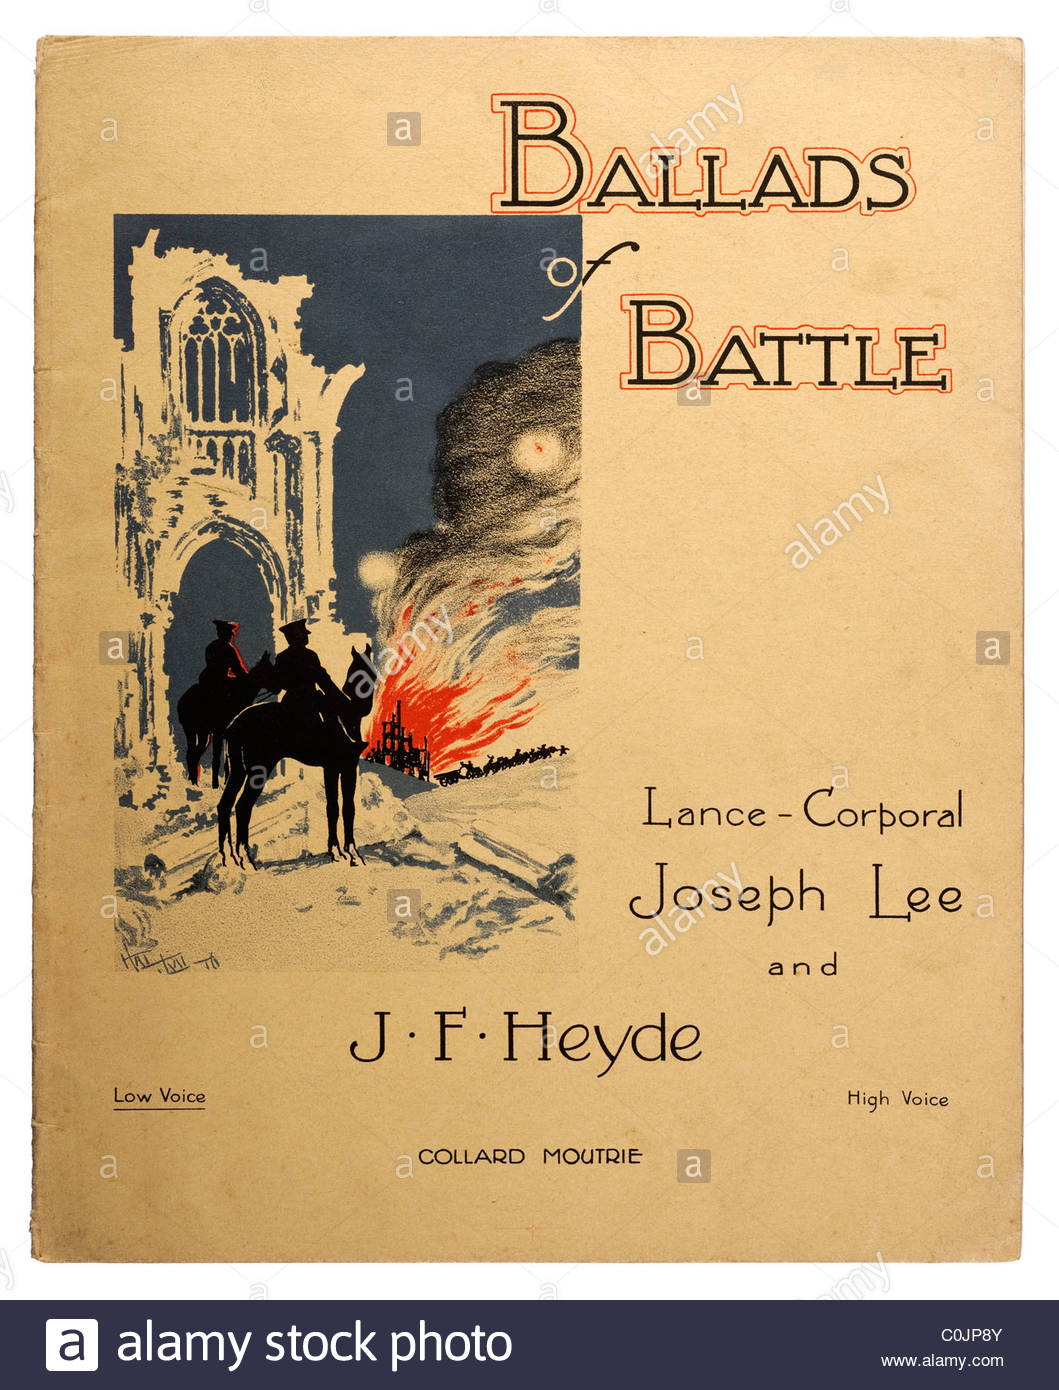 Old rare sheet music front cover from 1916 titled 'Ballads of Battle' by Lance Corporal Joseph Lee and J - Stock Image